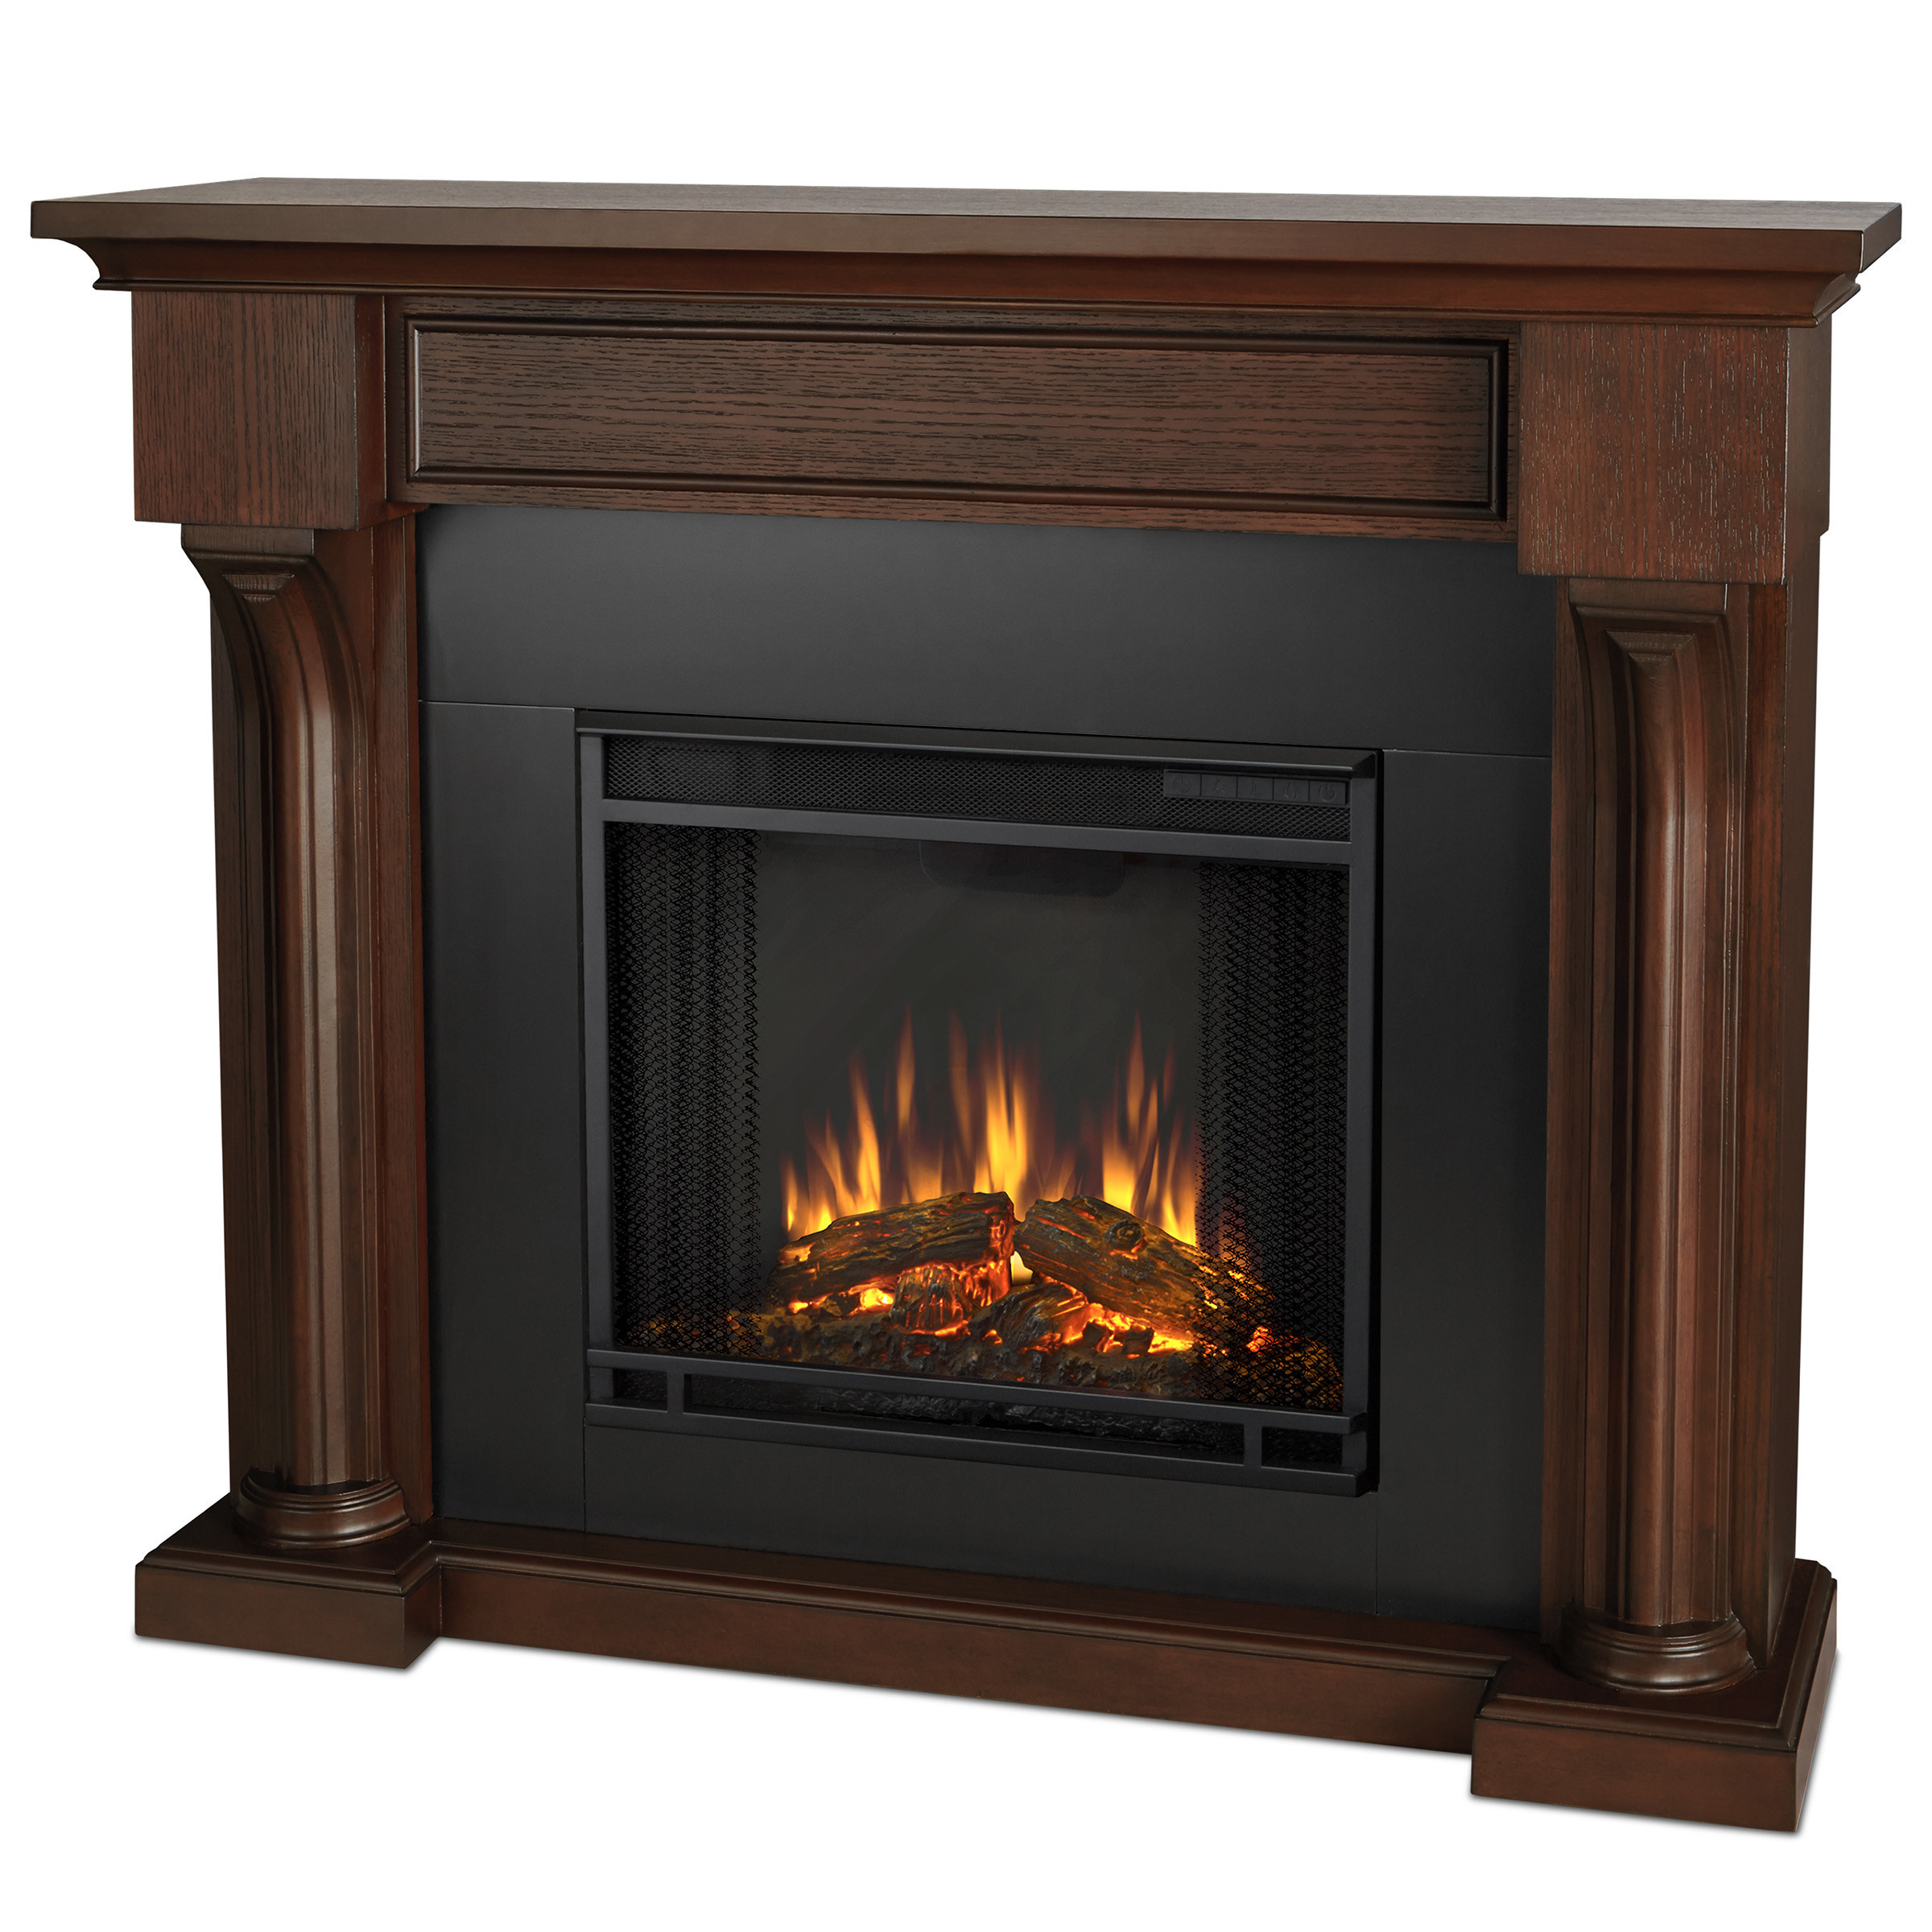 Best ideas about Real Flame Electric Fireplace . Save or Pin Real Flame Verona Electric Fireplace & Reviews Now.